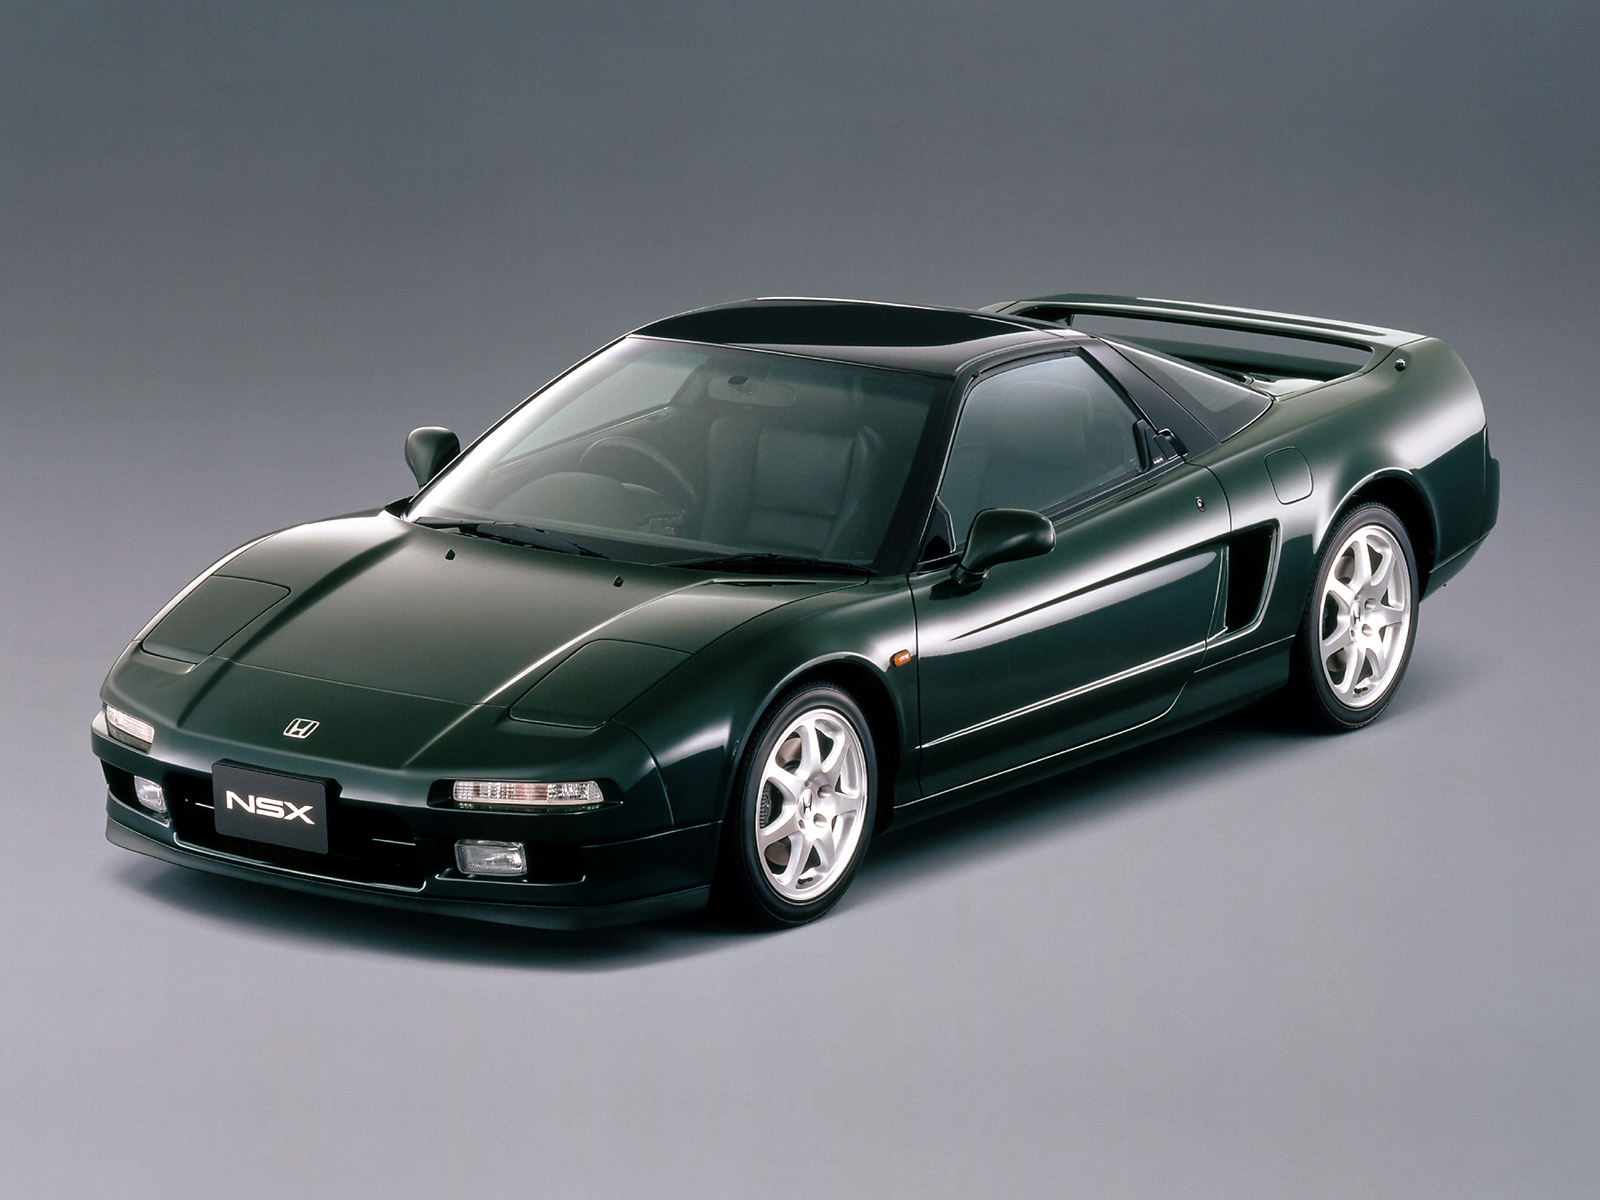 1991 honda nsx pictures cargurus. Black Bedroom Furniture Sets. Home Design Ideas